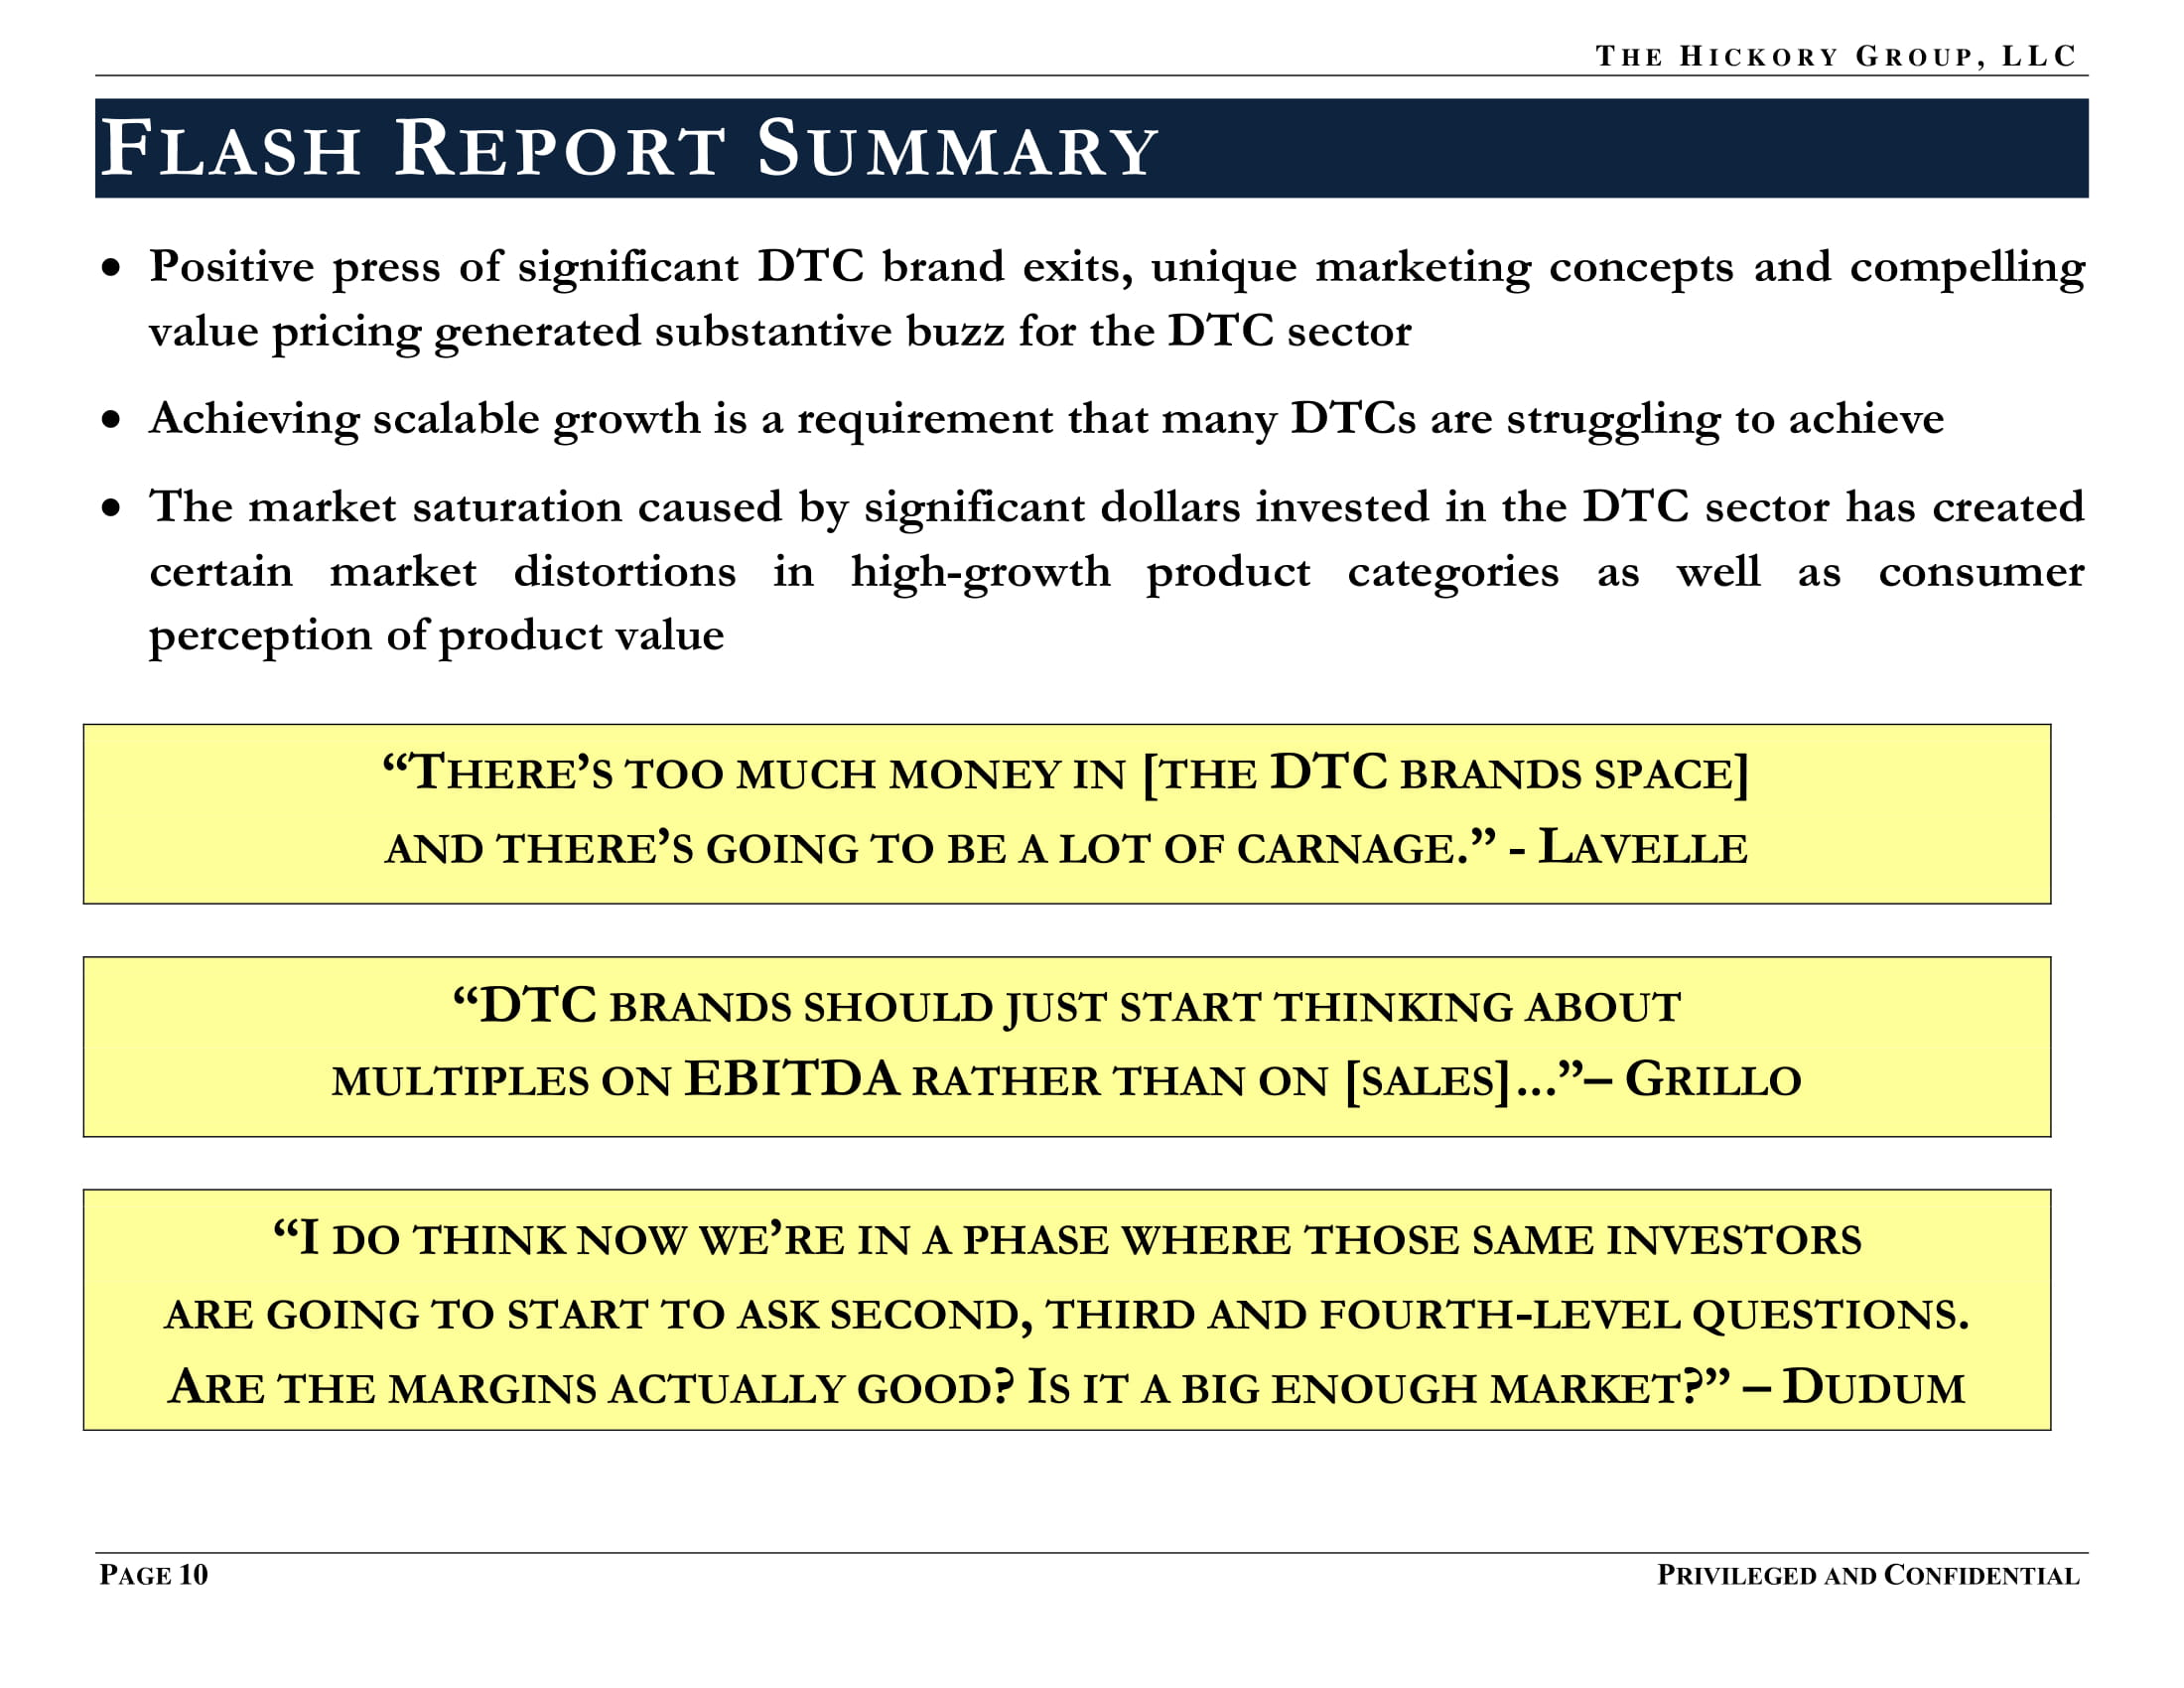 FINAL_THG DTC Flash Report_Q2 2019 _ Public Release (Privileged and Confidential)-12.jpg